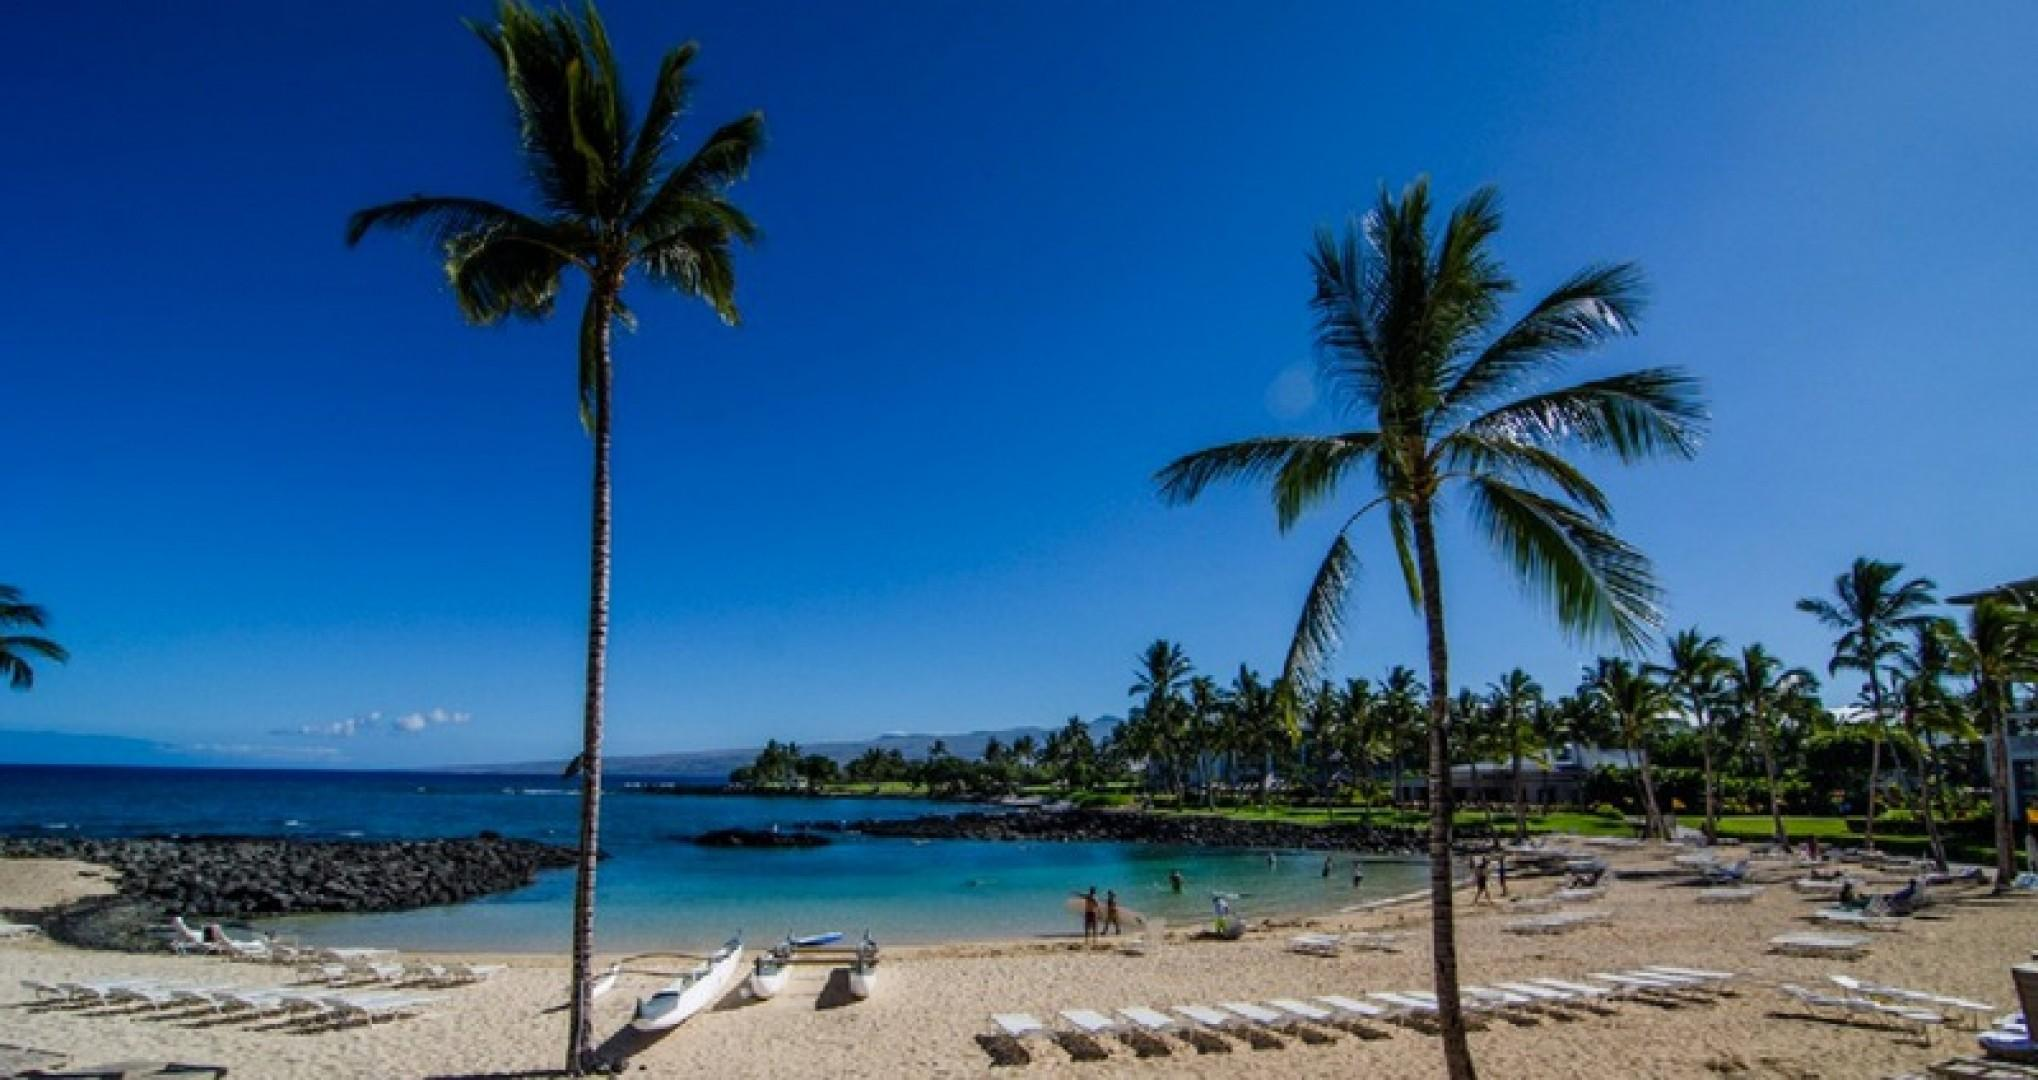 You have access to the private Mauna Lani Beach Club.